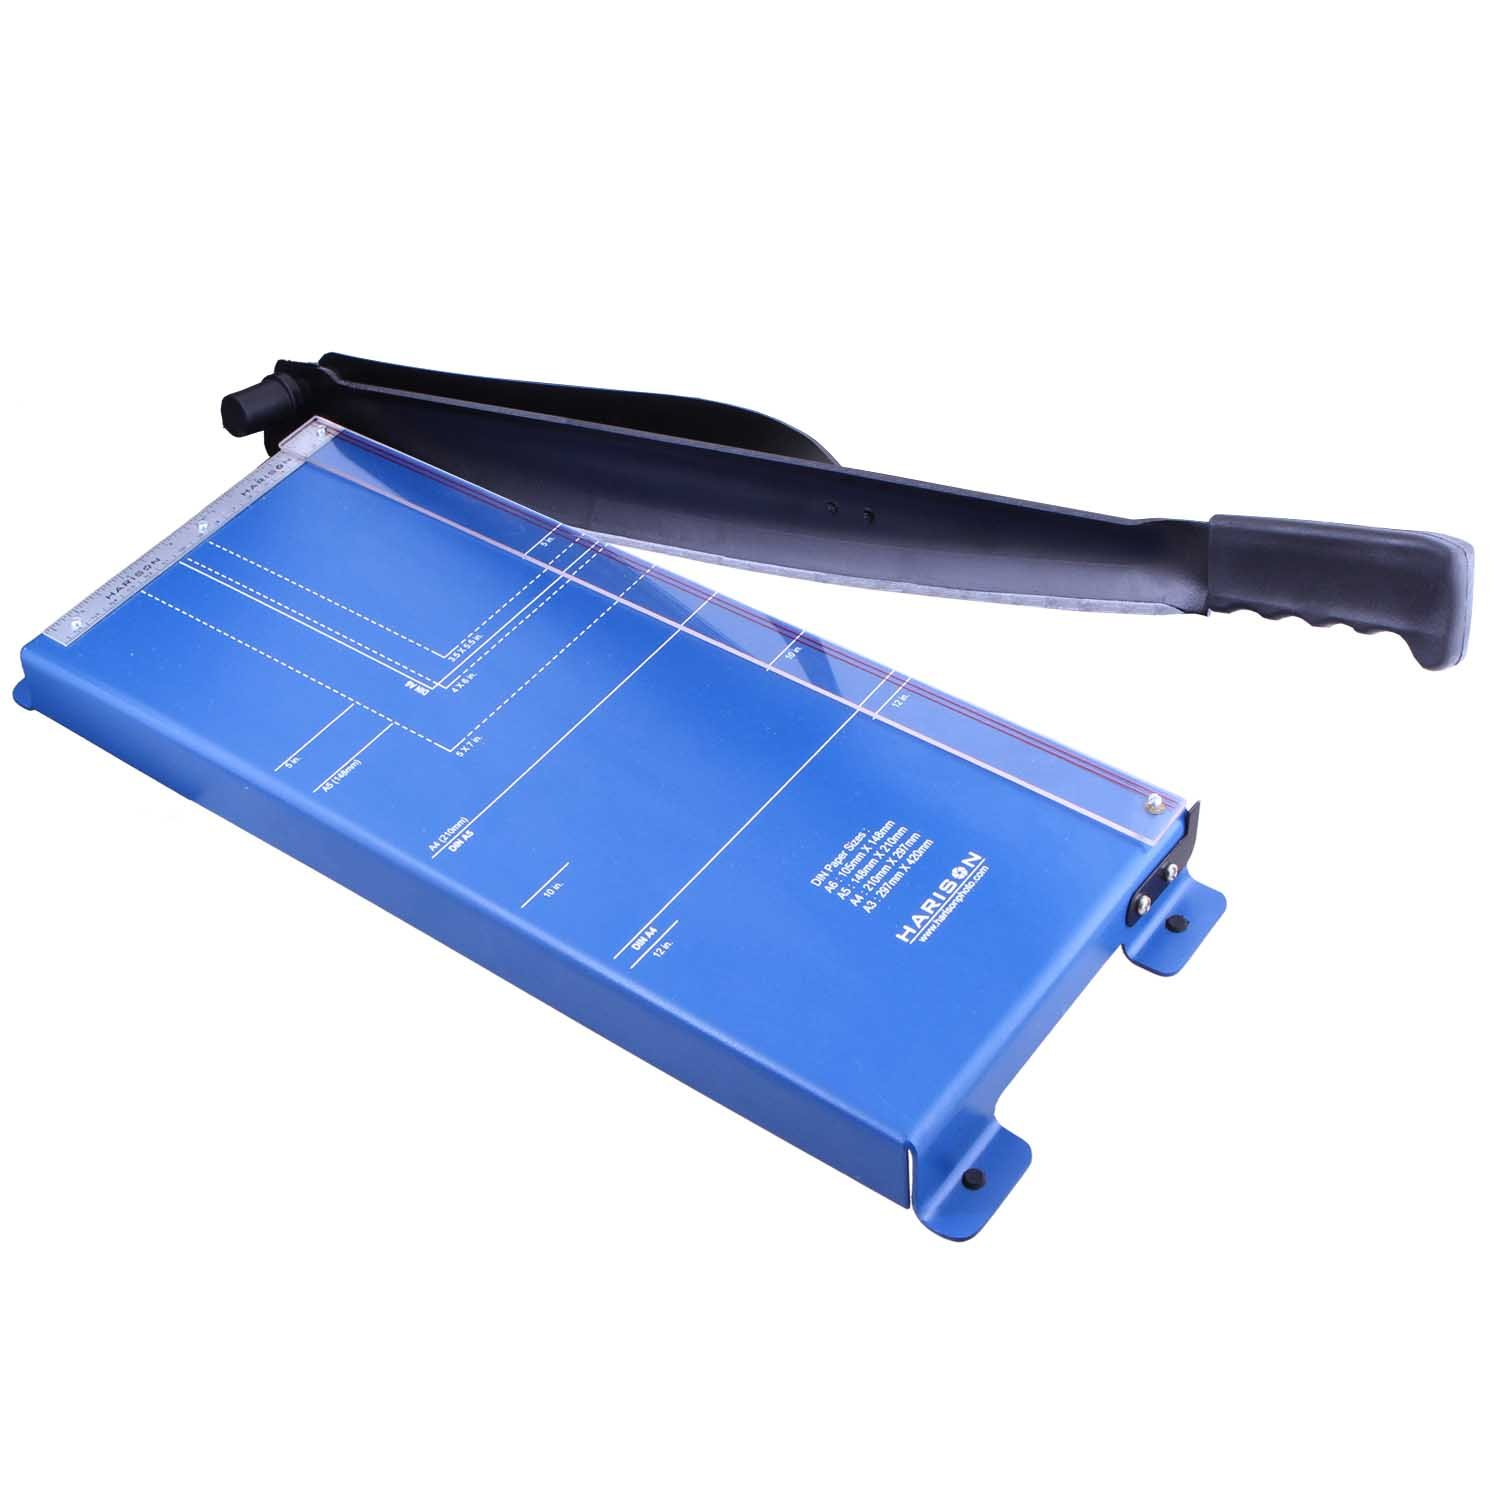 Harison Solid Paper Cutter Trimmer Cutters 12 inch